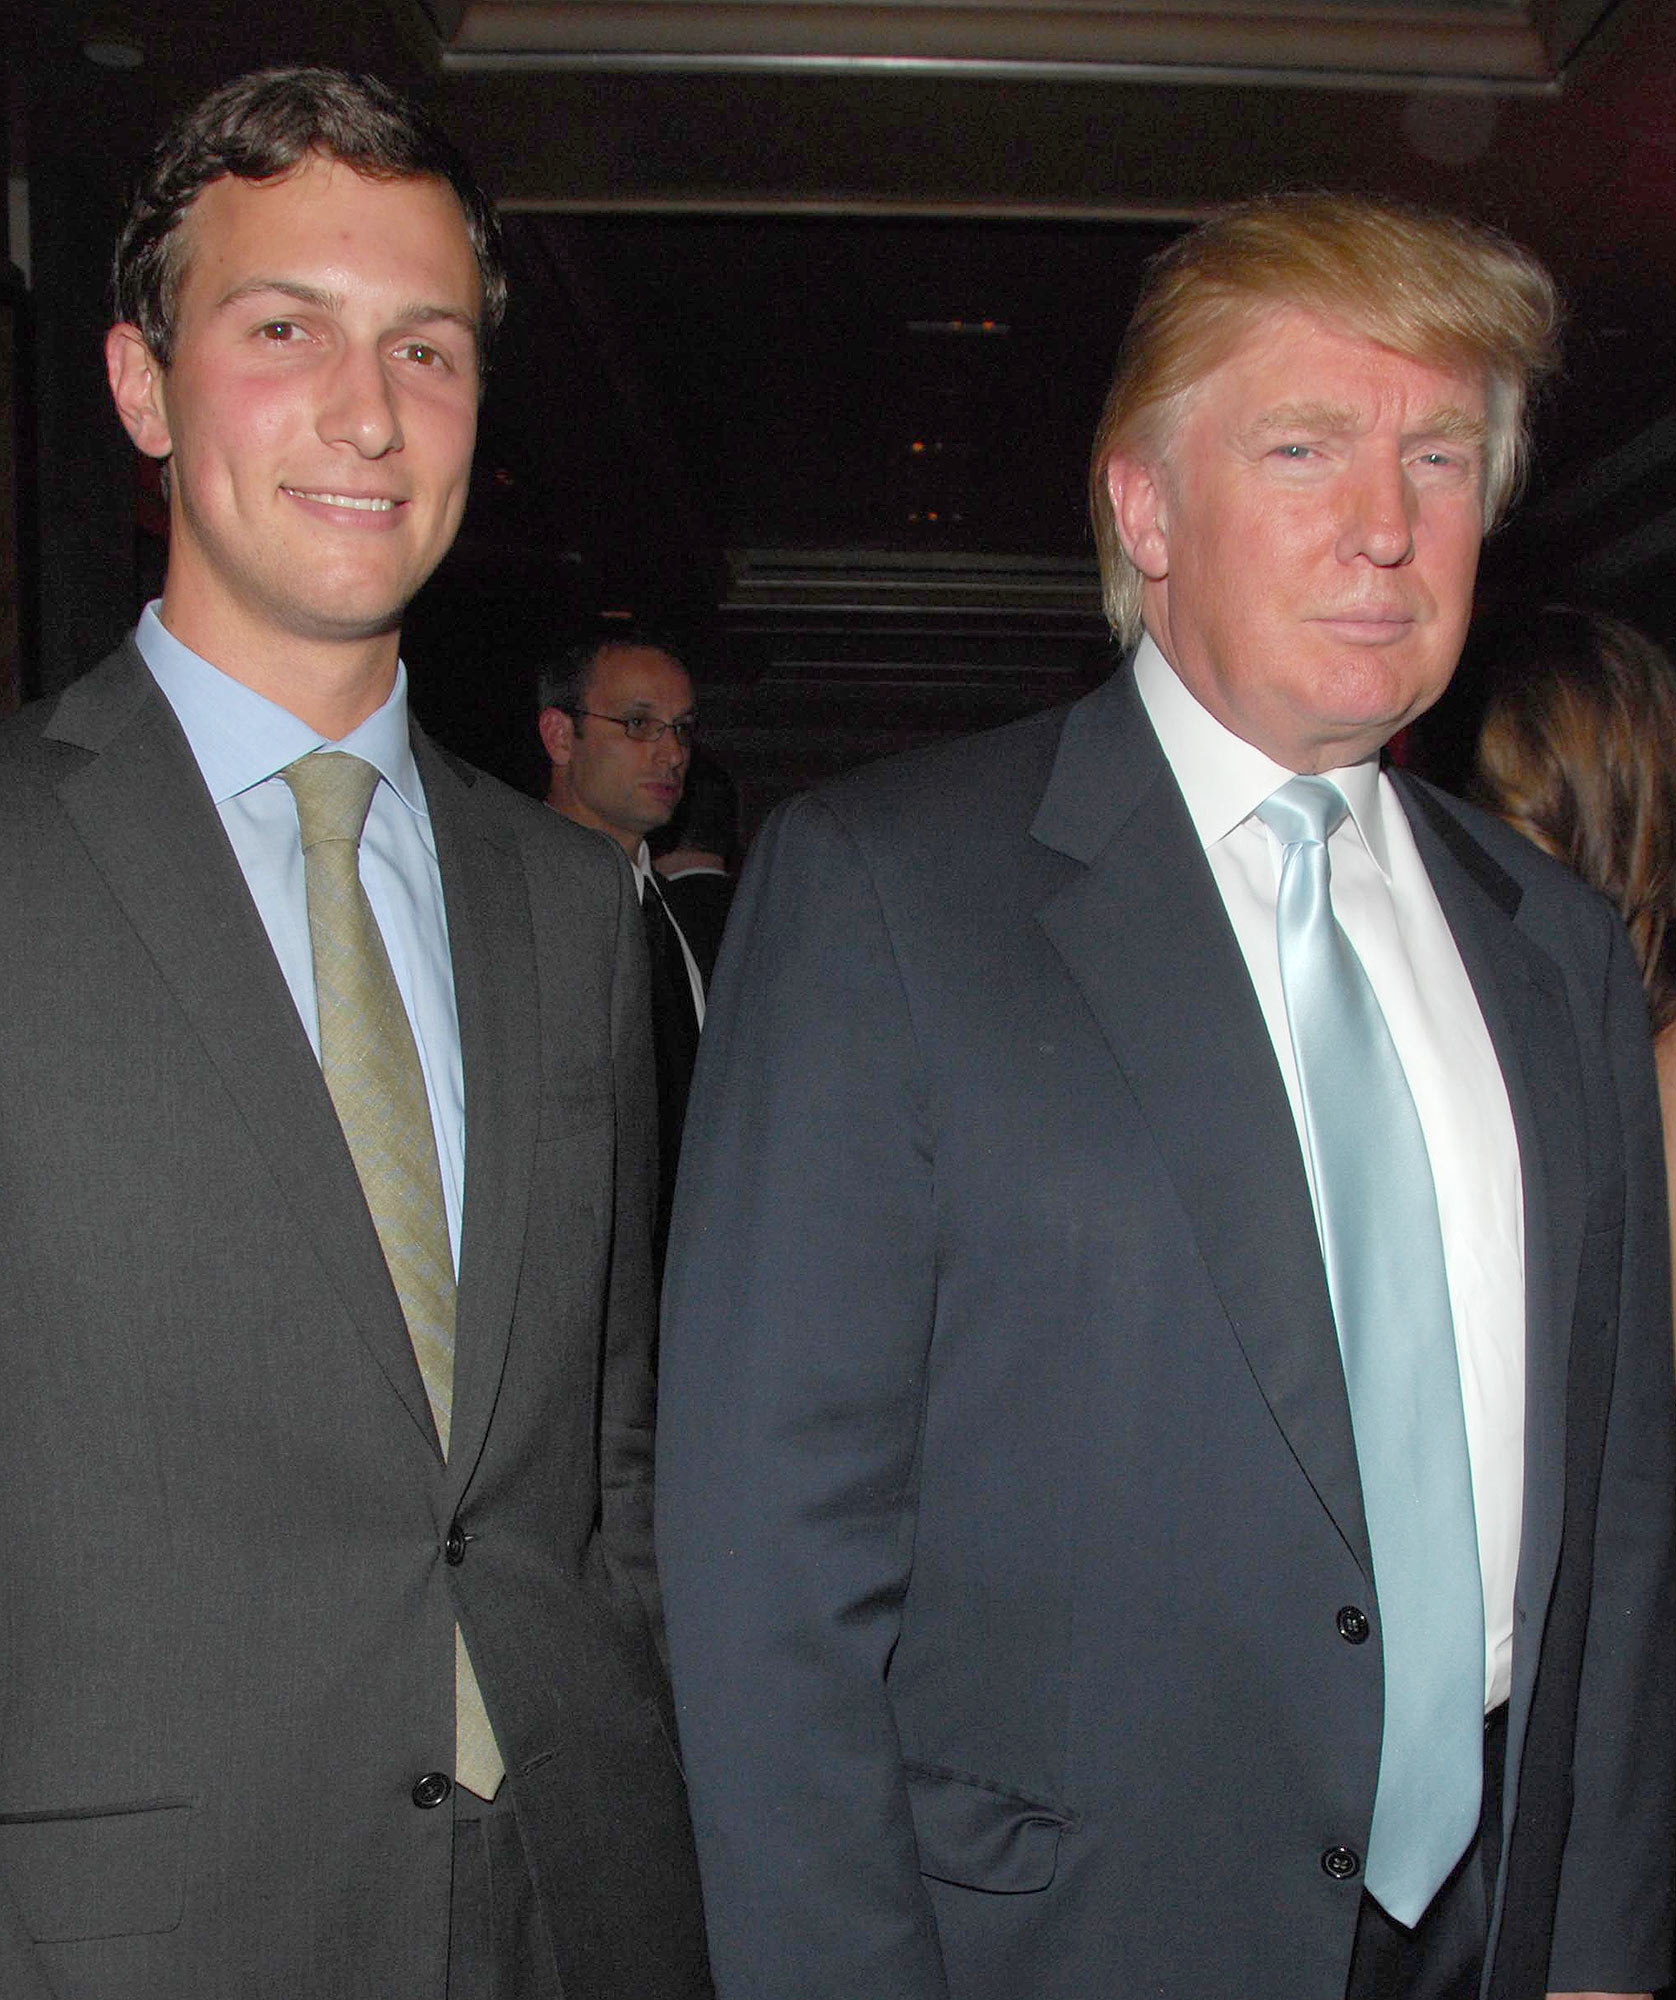 Donald Trump Jared Kushner - News